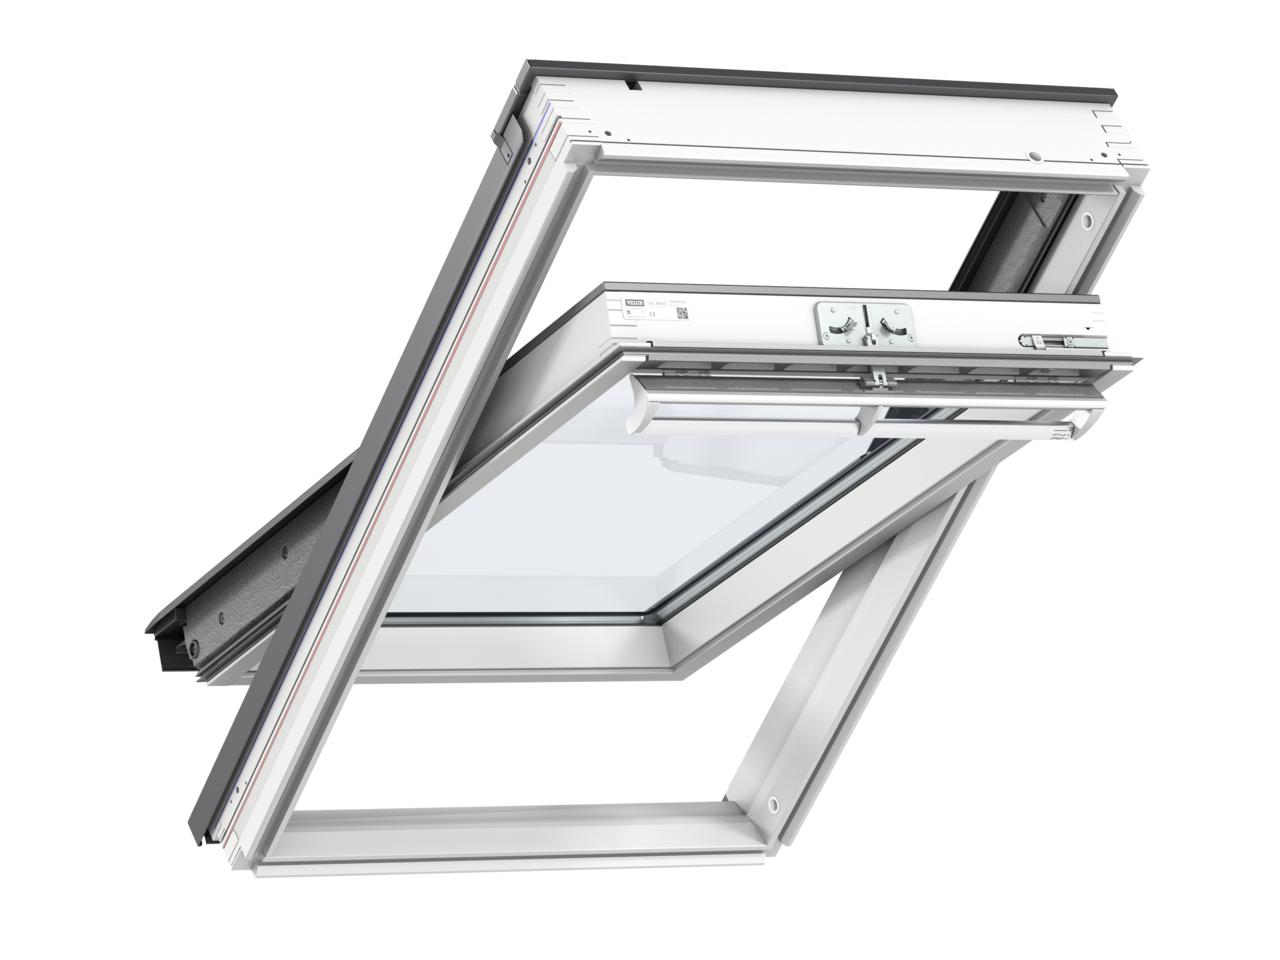 Velux GGL UK08 1340 x 1400mm Centre Pivot 60Pane Roof Window - White Painted